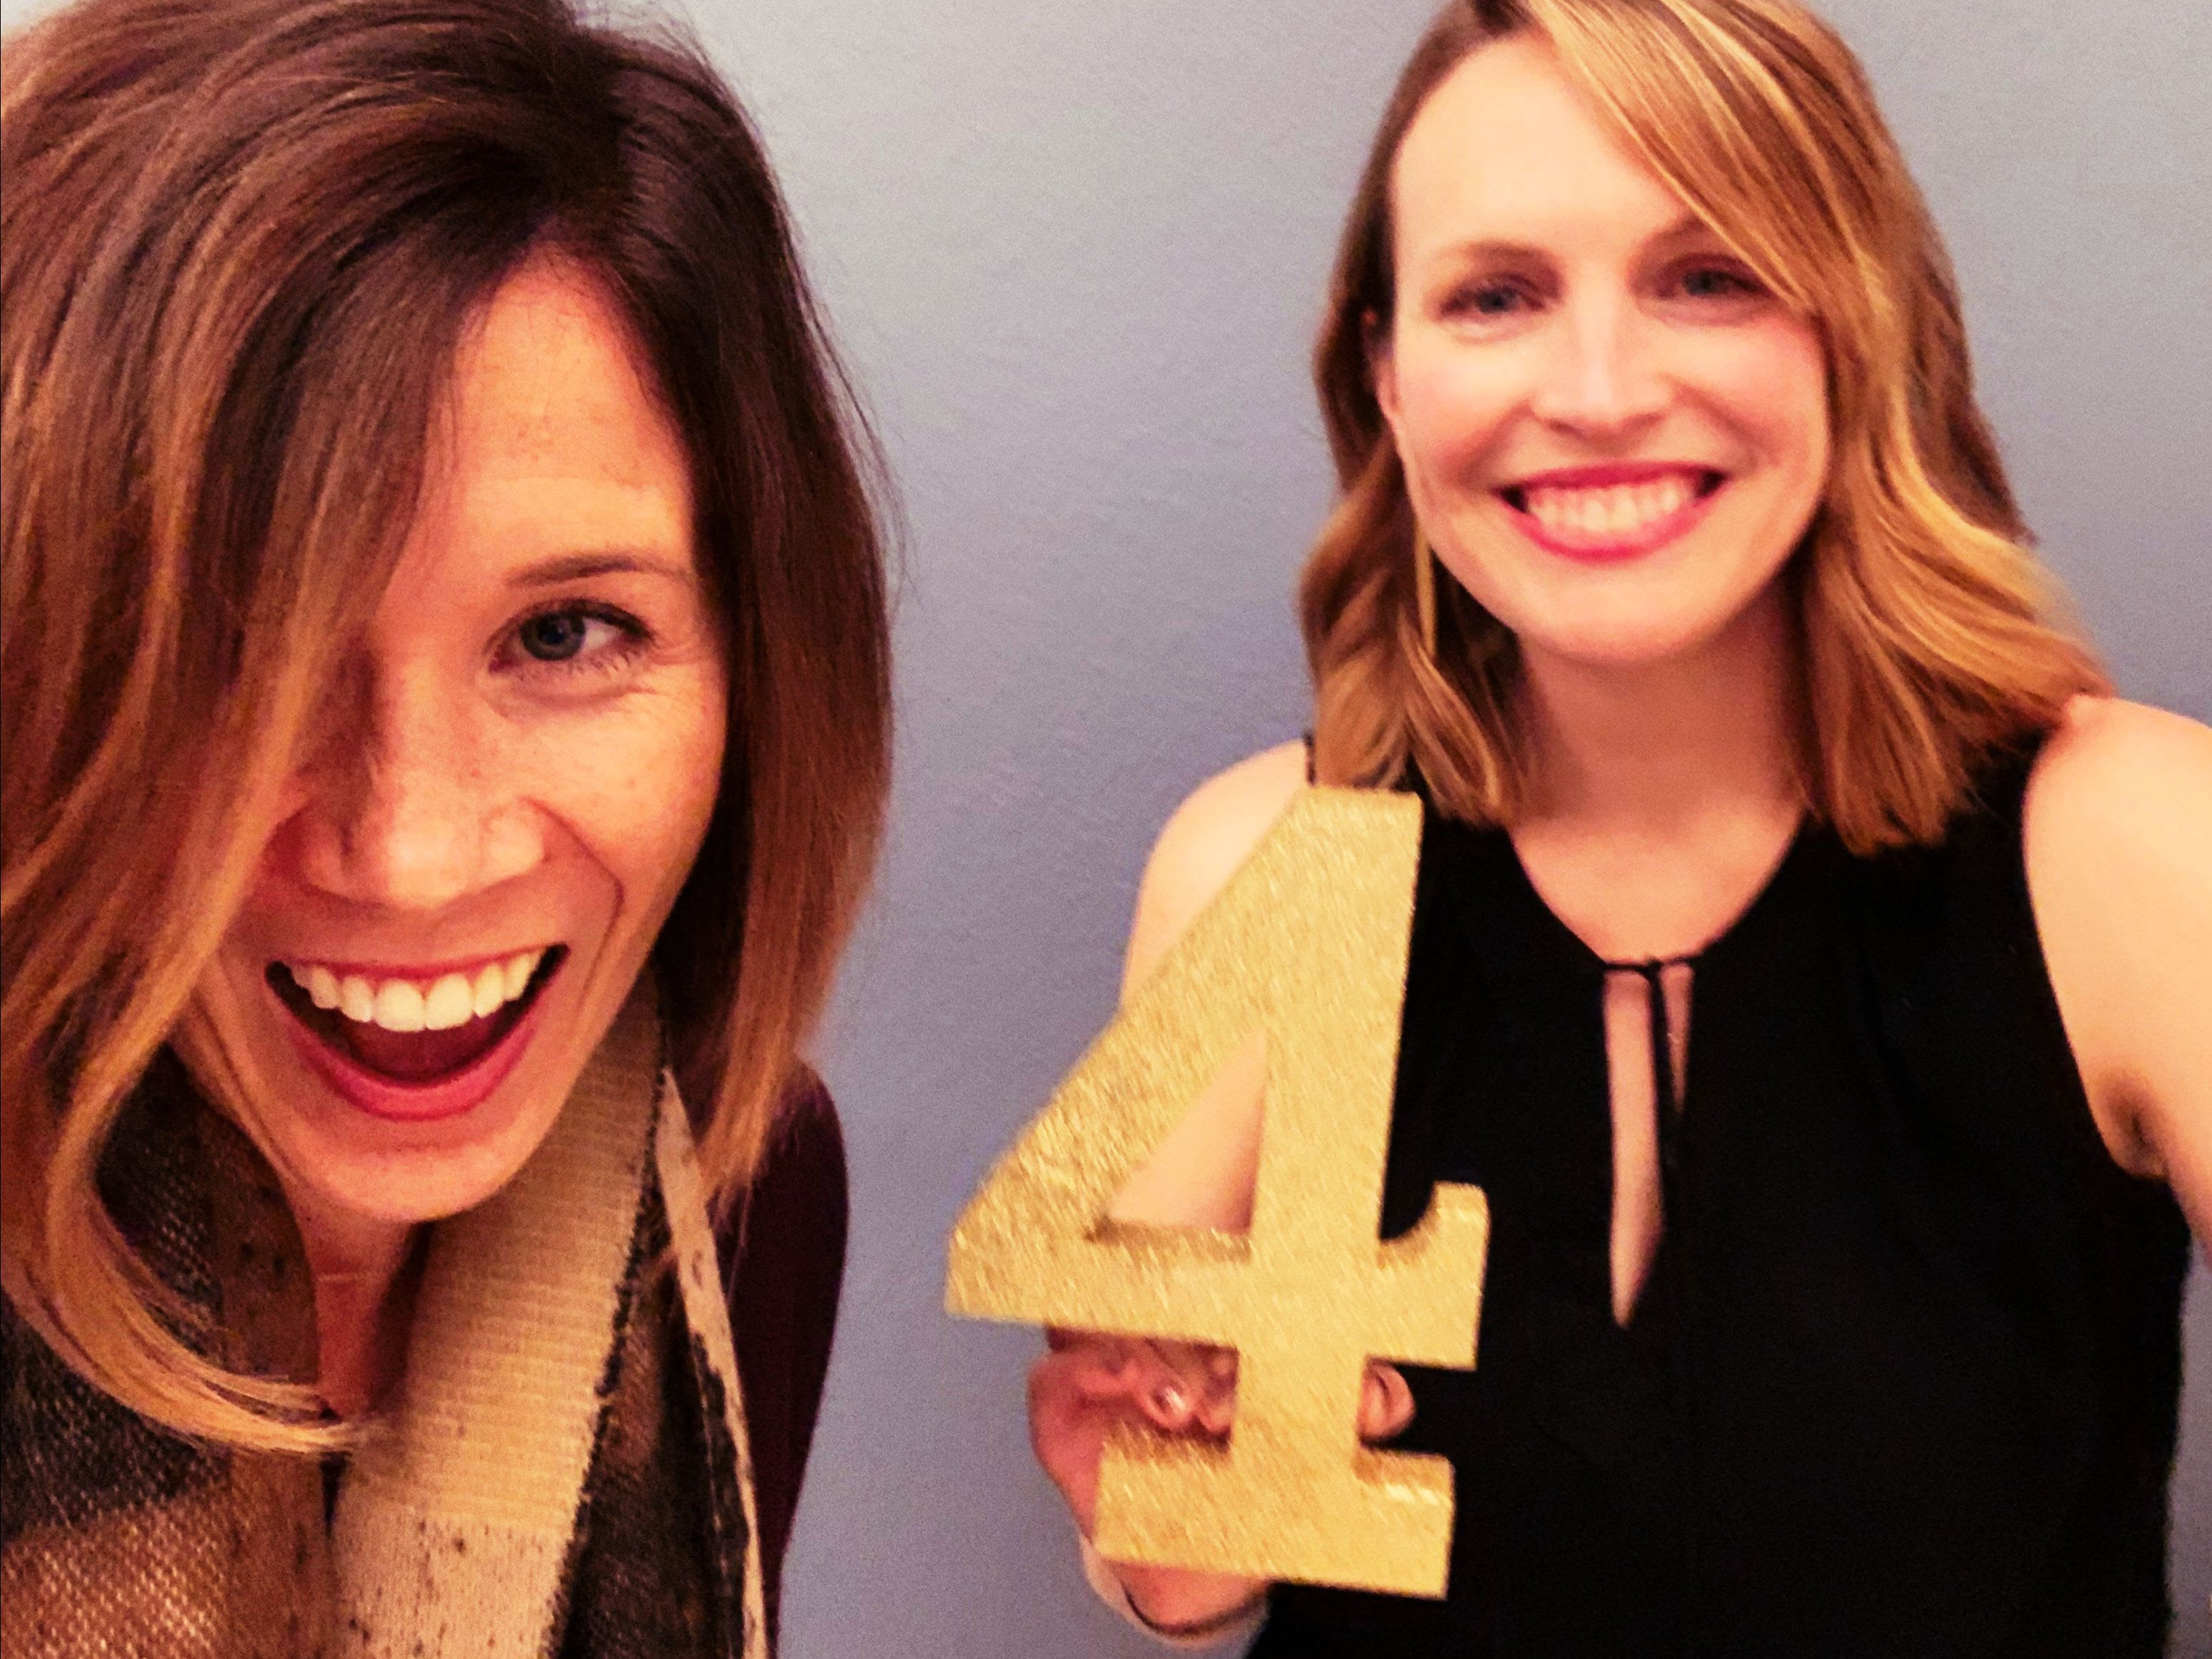 Sound co-owners, Jody Vaynshtok, MS, CCC-SLP and Melissa Beer, AuD, FAAA celebrating 4 years!